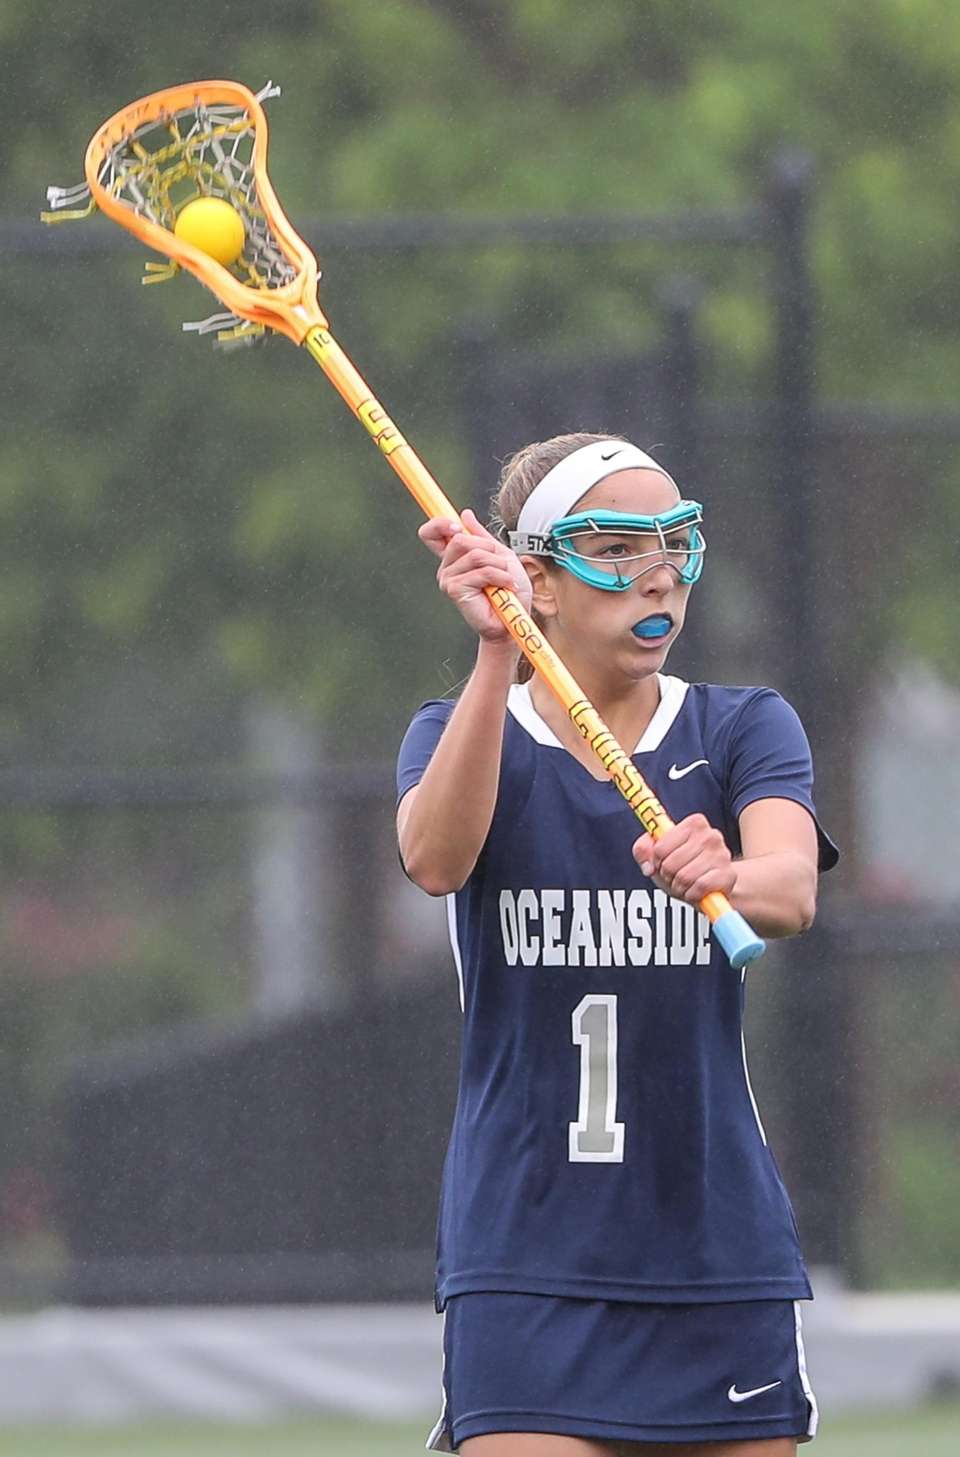 Oceanside's Christina McCabe had a strong offensive game